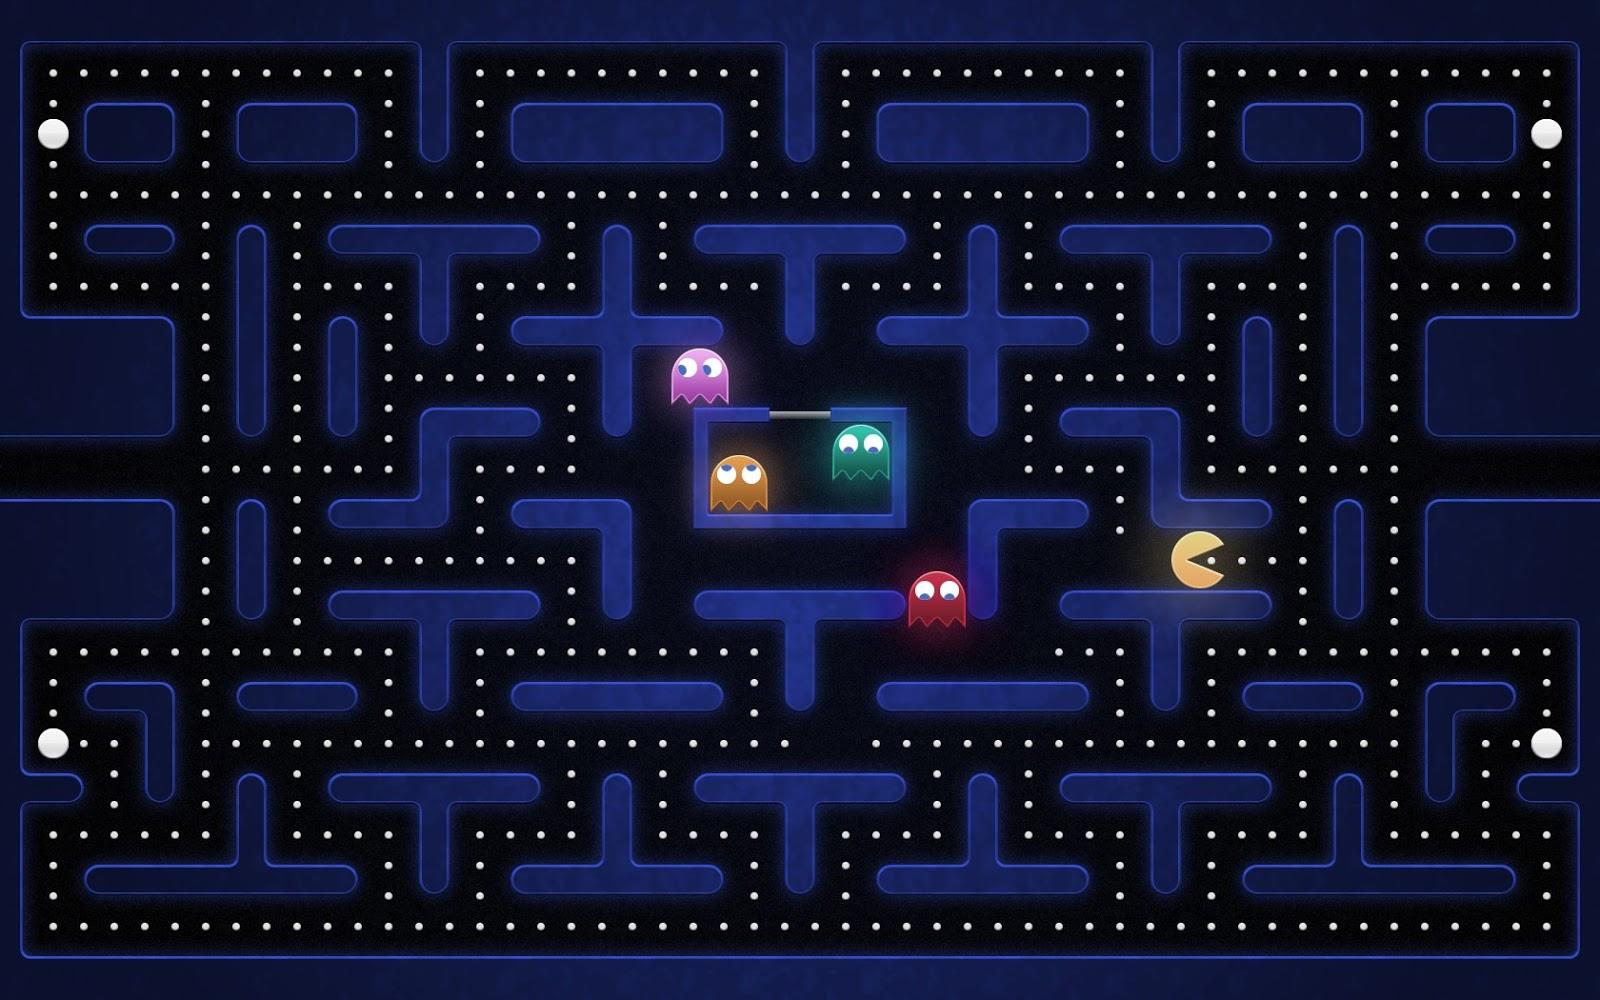 Retro Pacman Video Game Desktop Wallpaper